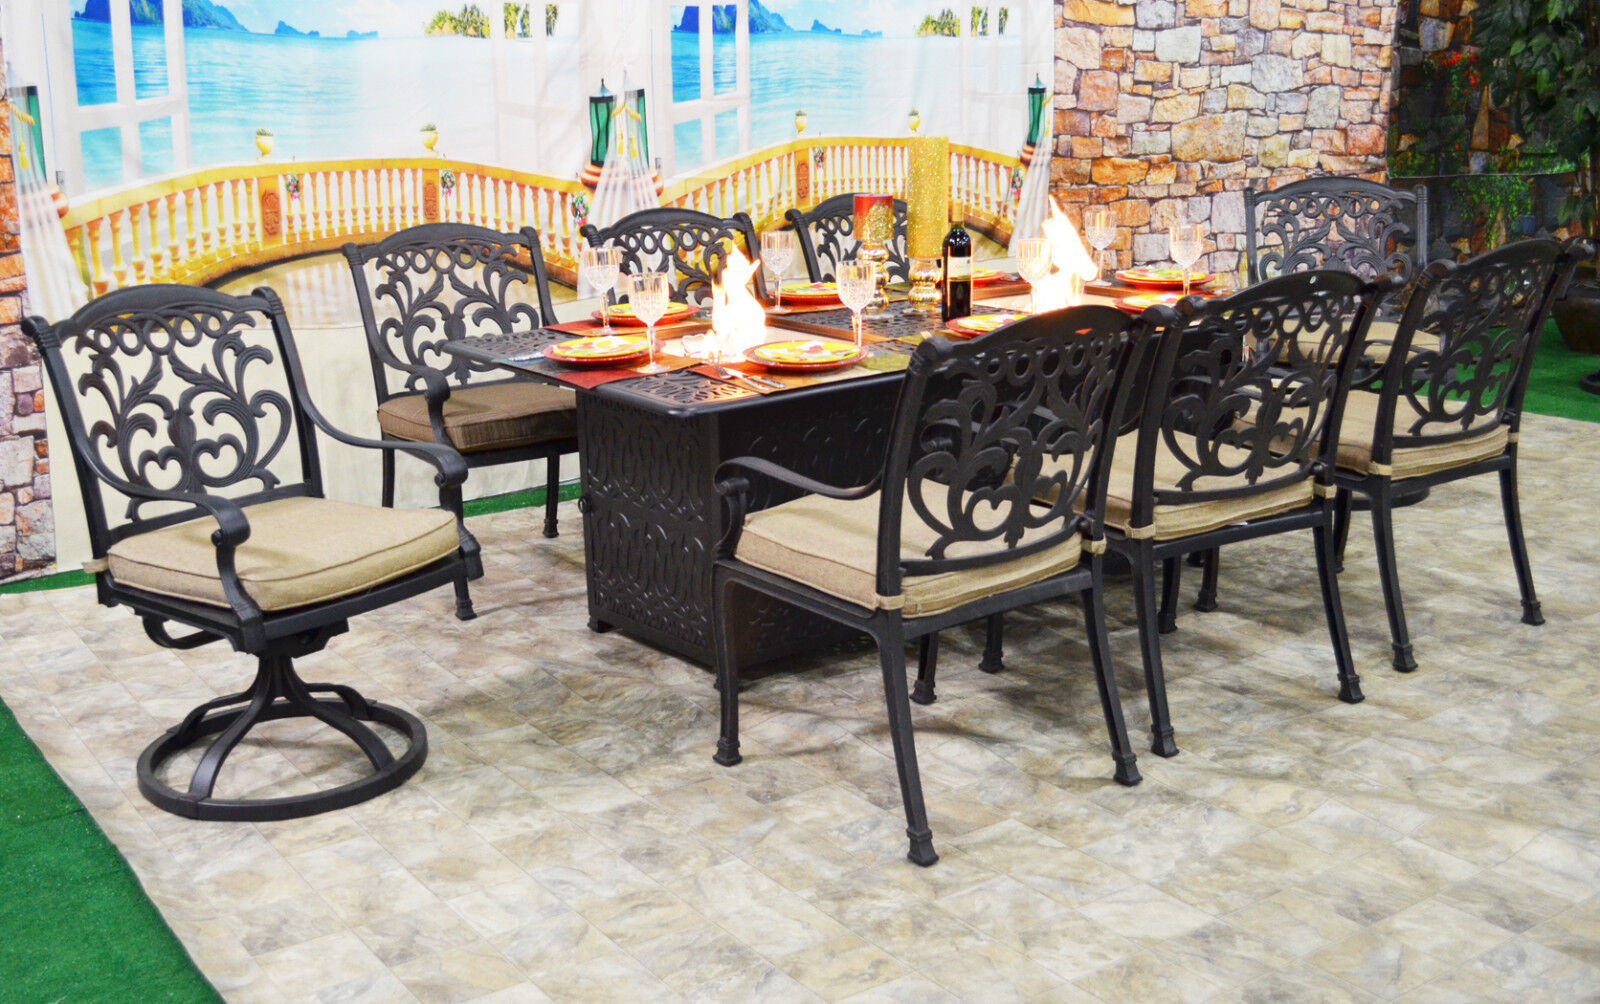 Patio Dining Table With Built In Fire Pit 9 Piece Set Outdoor Furniture For Online